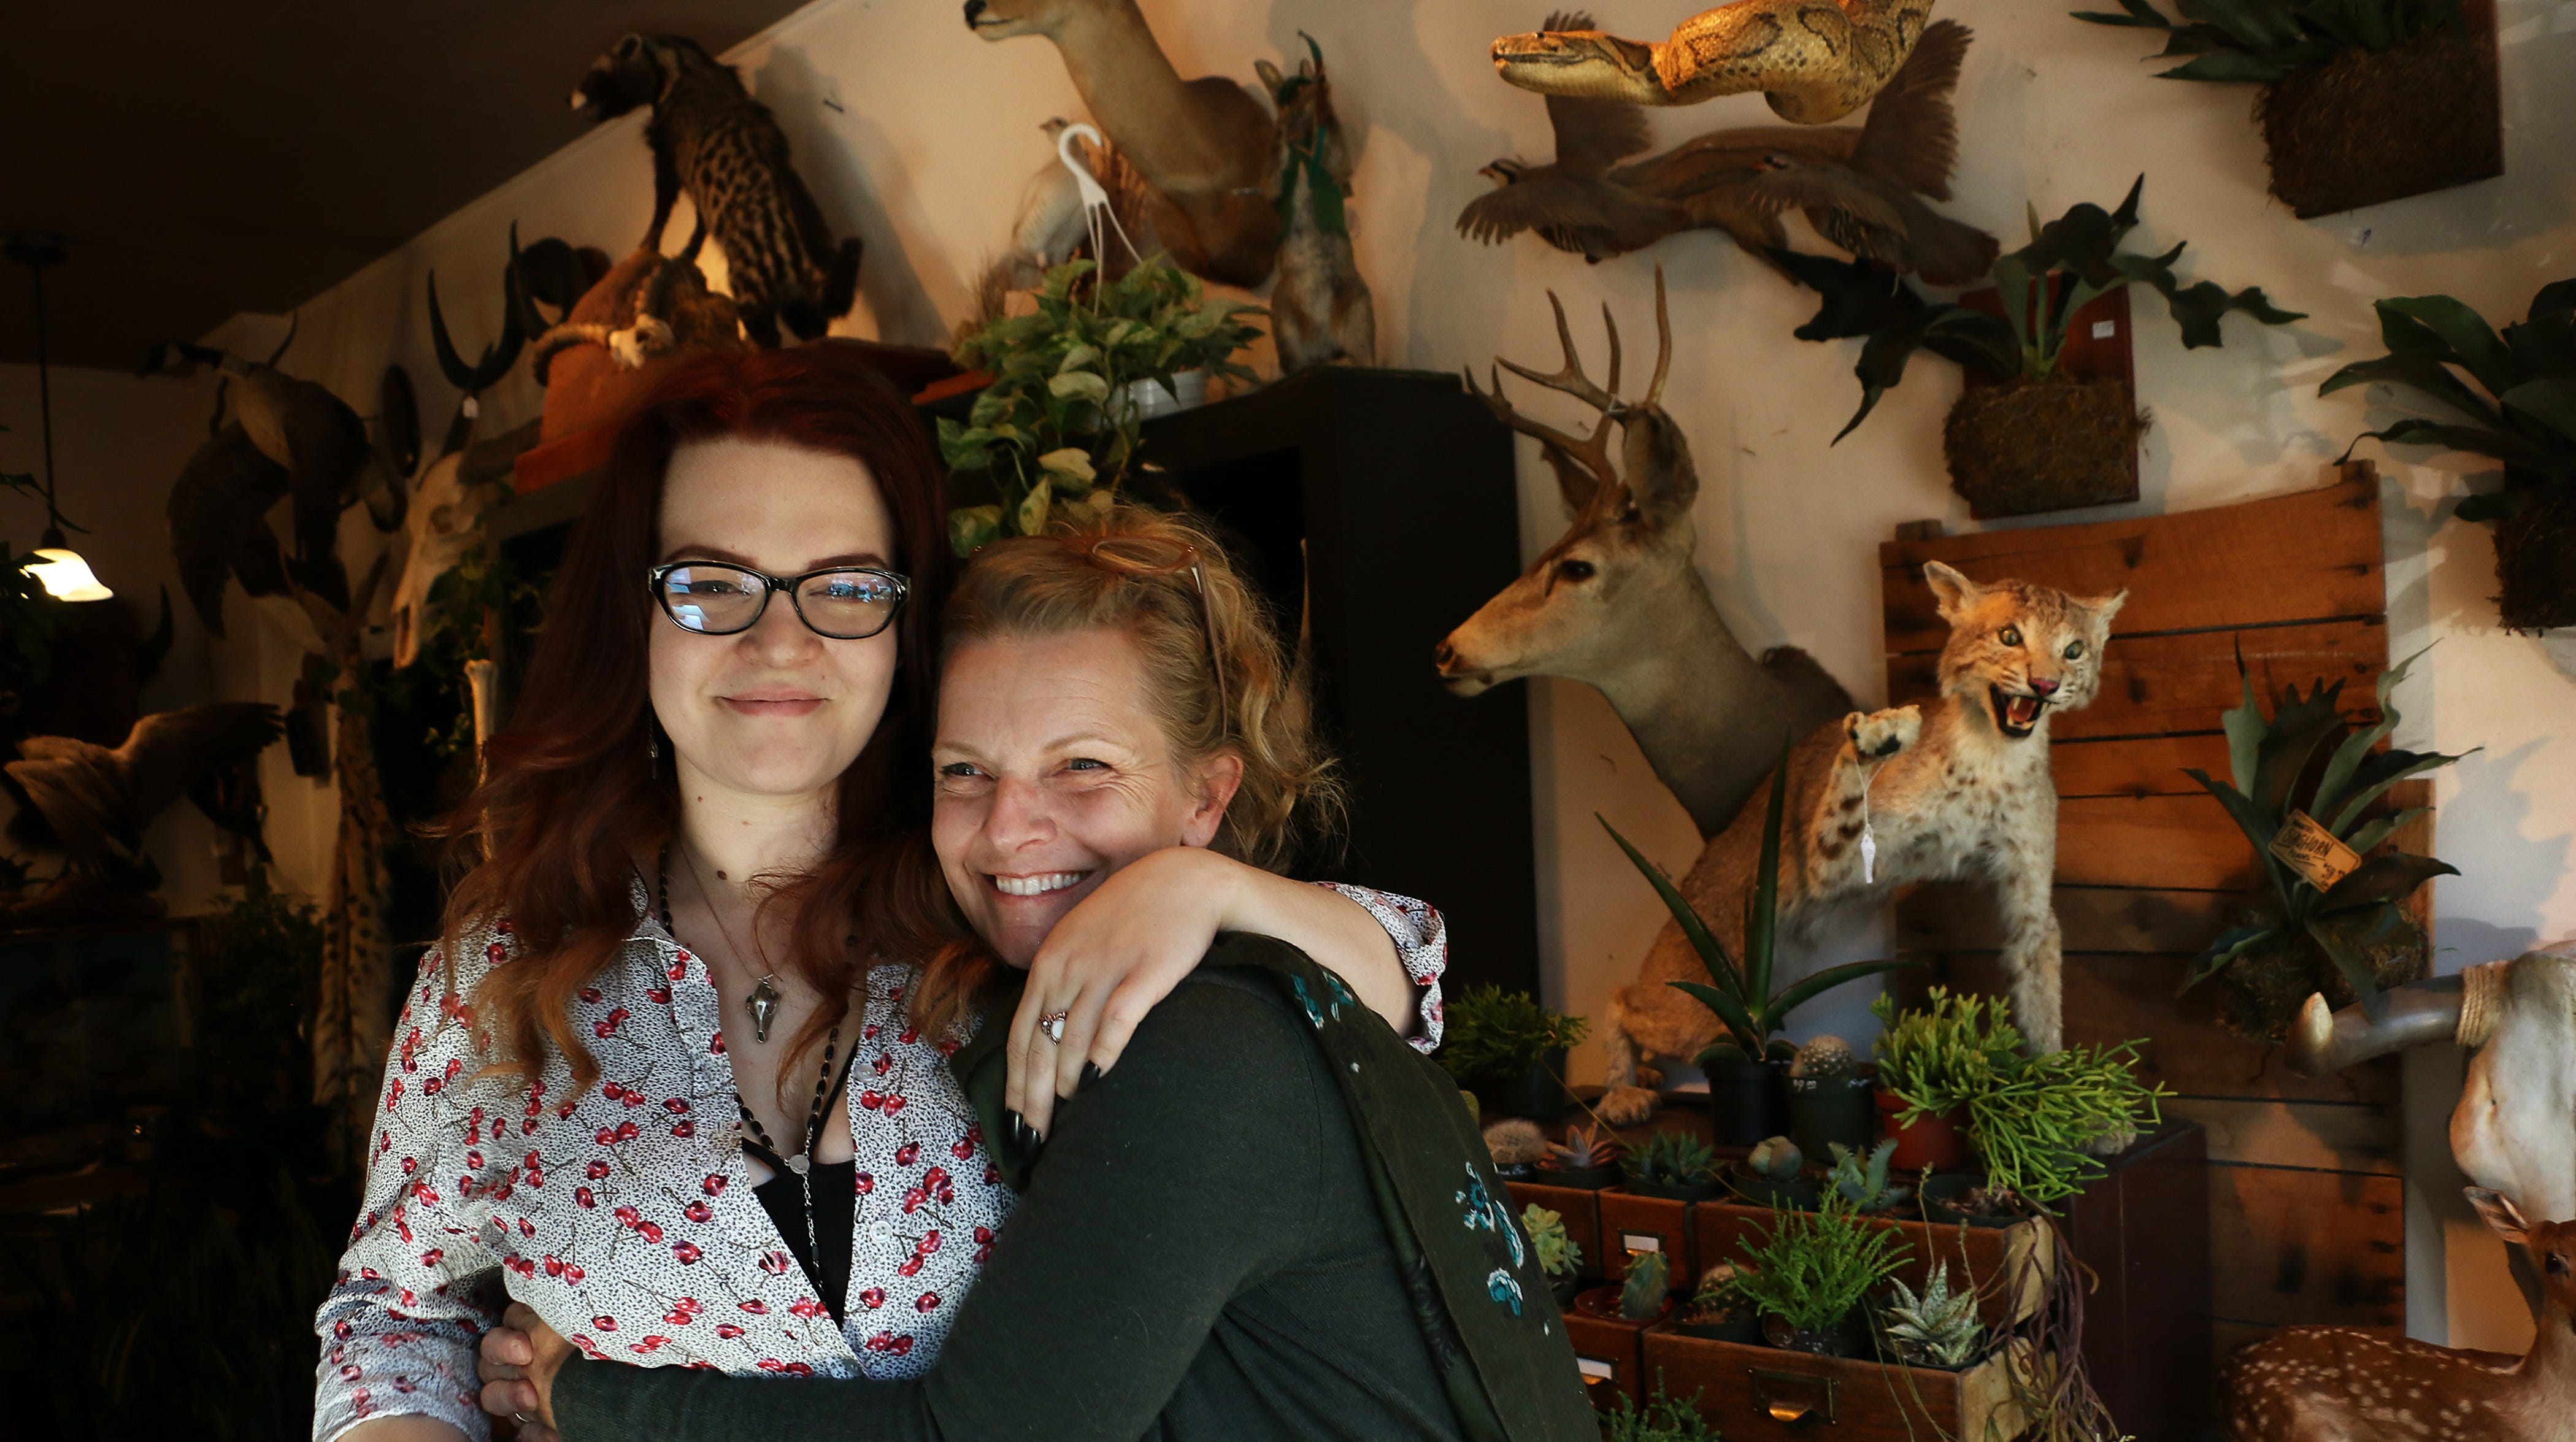 Owners Emily Felch, left, and her mom Marcy pose for a portrait in their store Natural Selection in Reno on Oct. 12, 2018.